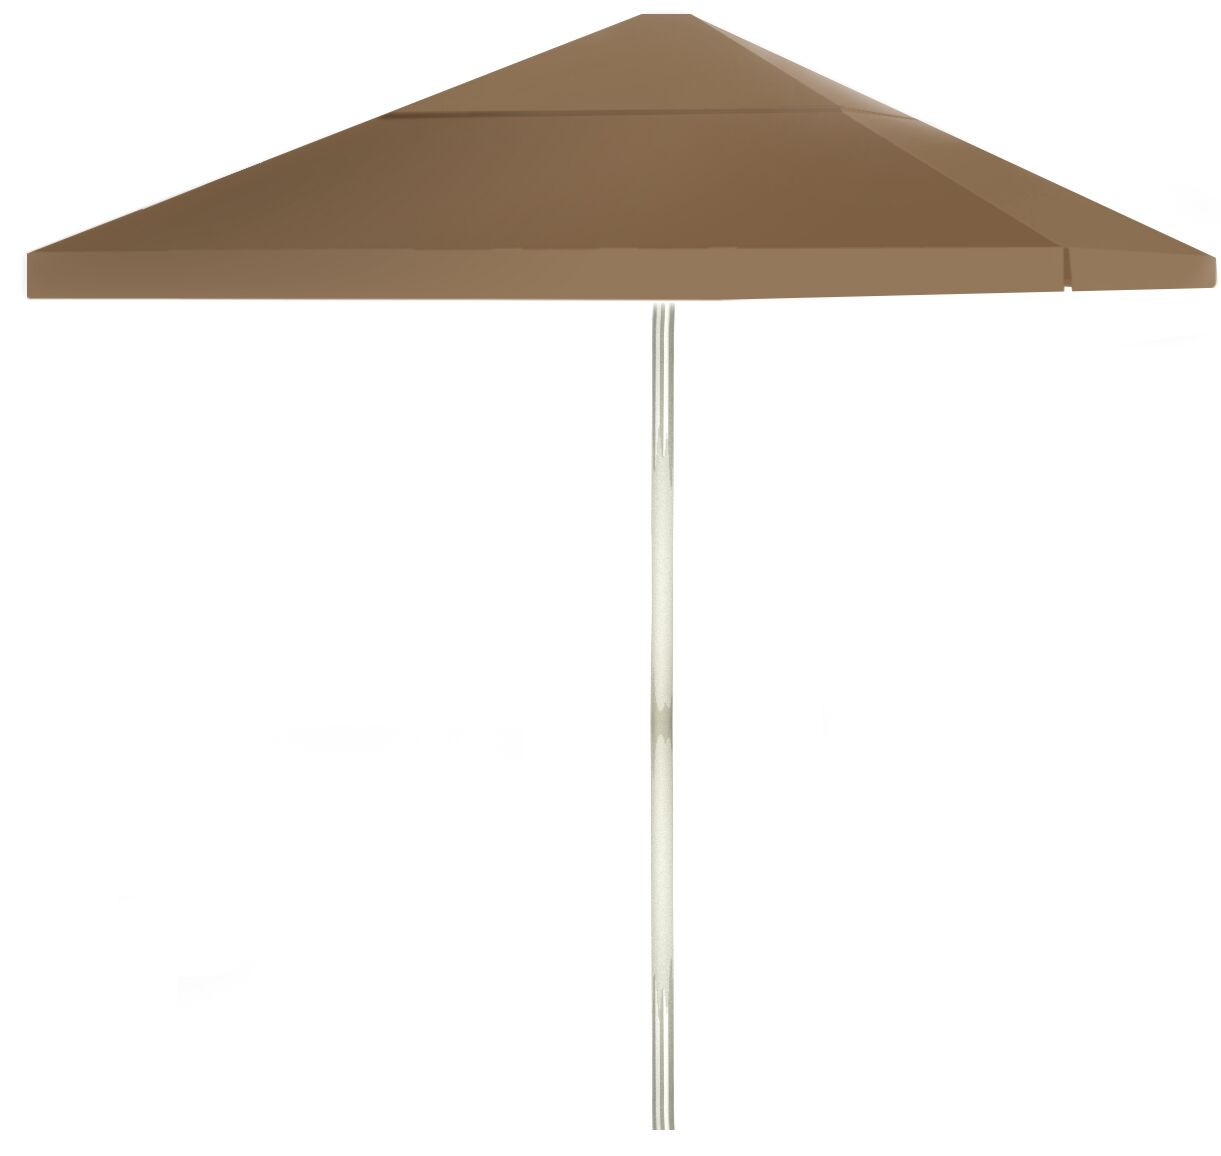 6' Square Market Umbrella Color: Light Brown